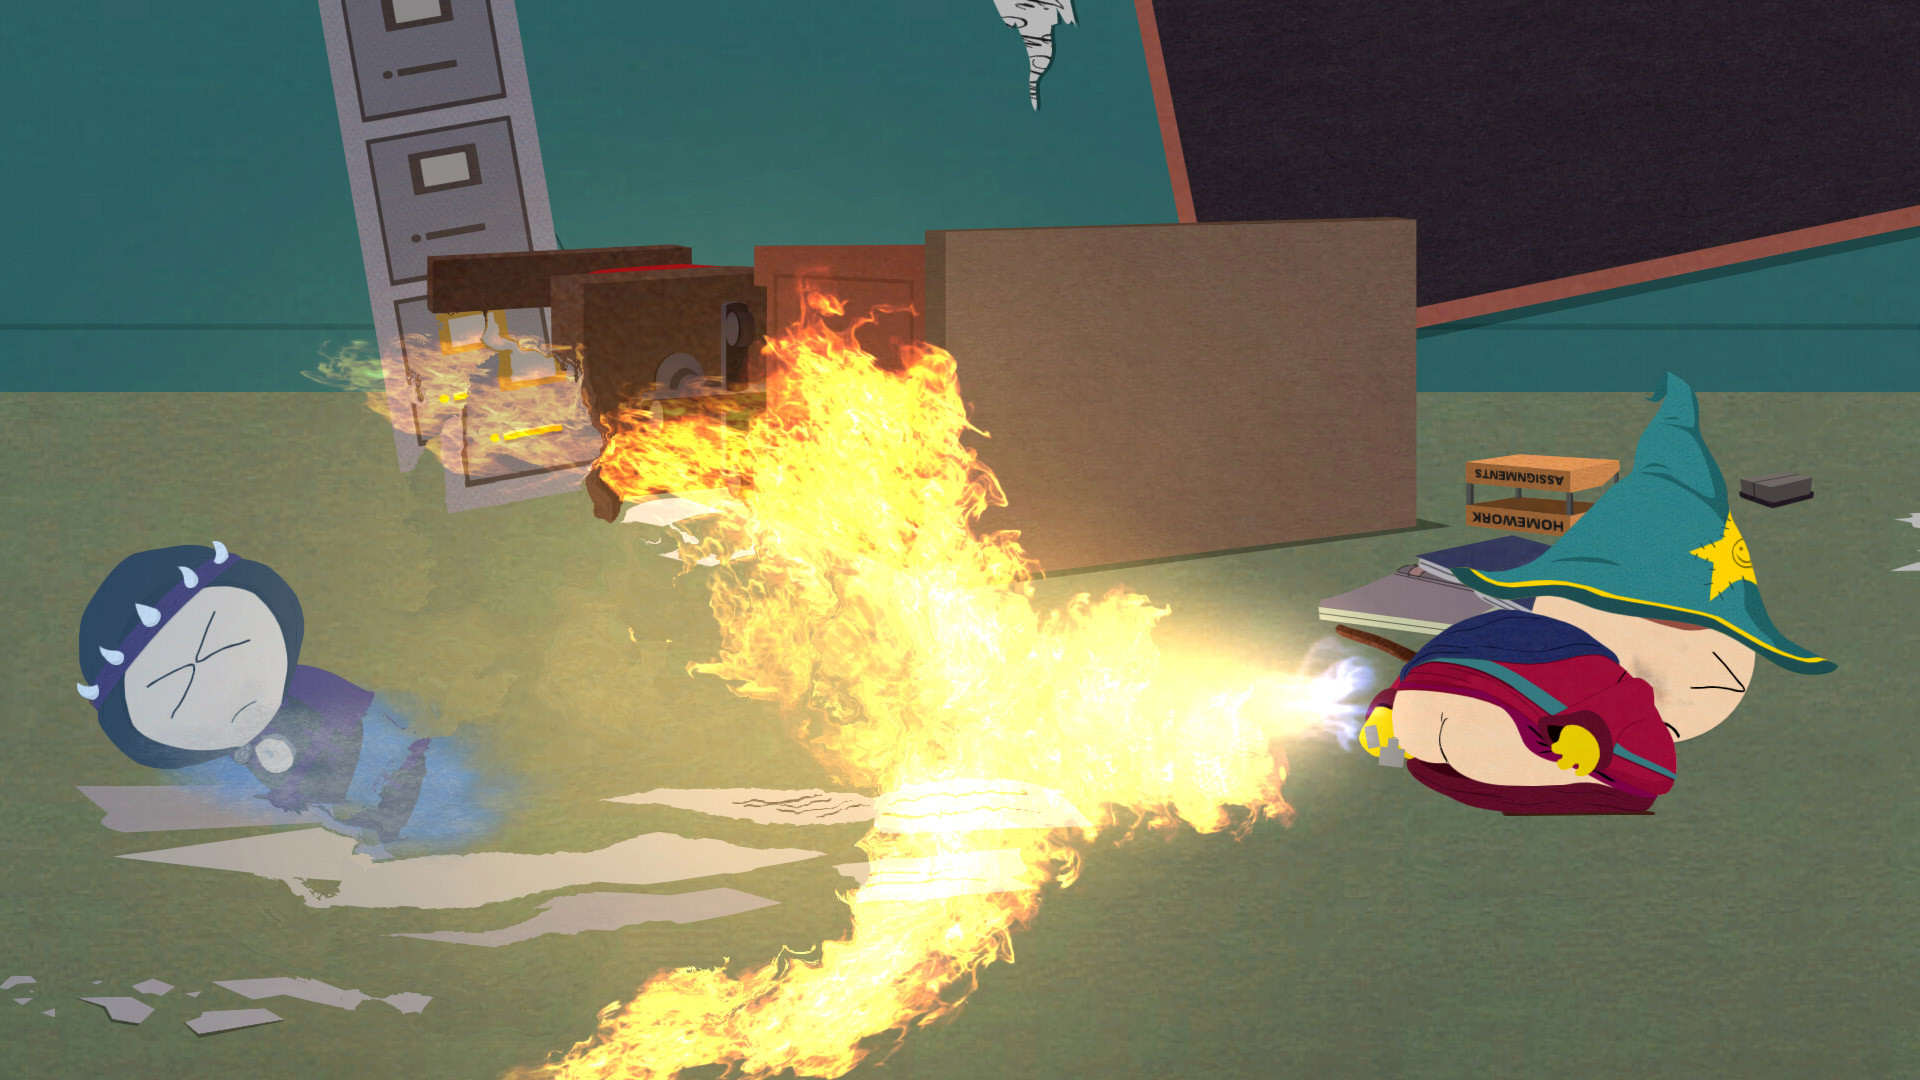 South Park Games VR Fart Simulator Looks Incredible South Park Stick of Truth 01